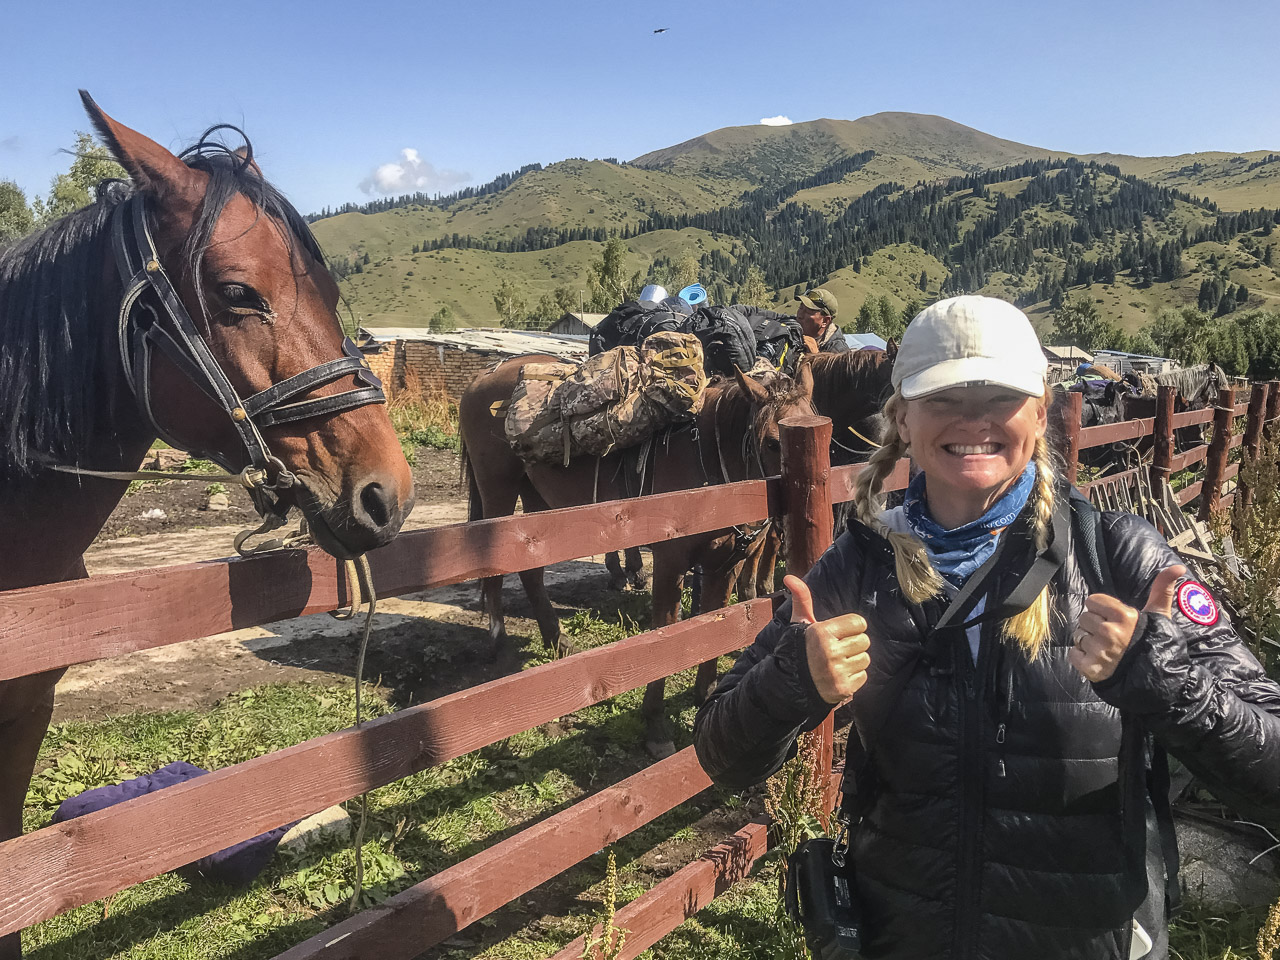 Starting out our Kyrgyzstan trek in Jyrgalan